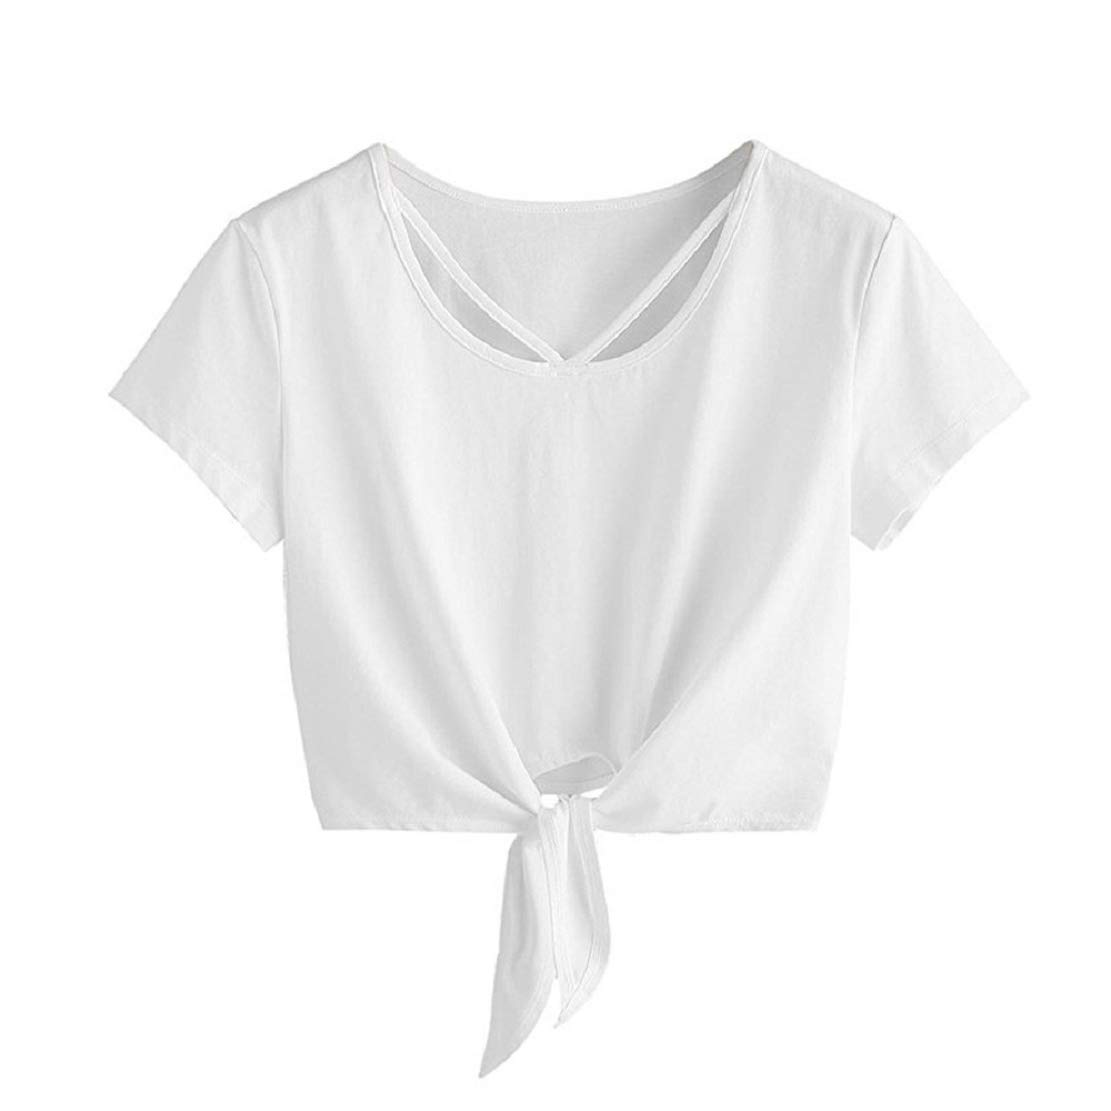 Women Summer Casual Crop T Shirt Front Bowknot Solid Short Sleeve Crop Tops T-Shirt by Lowprofile White